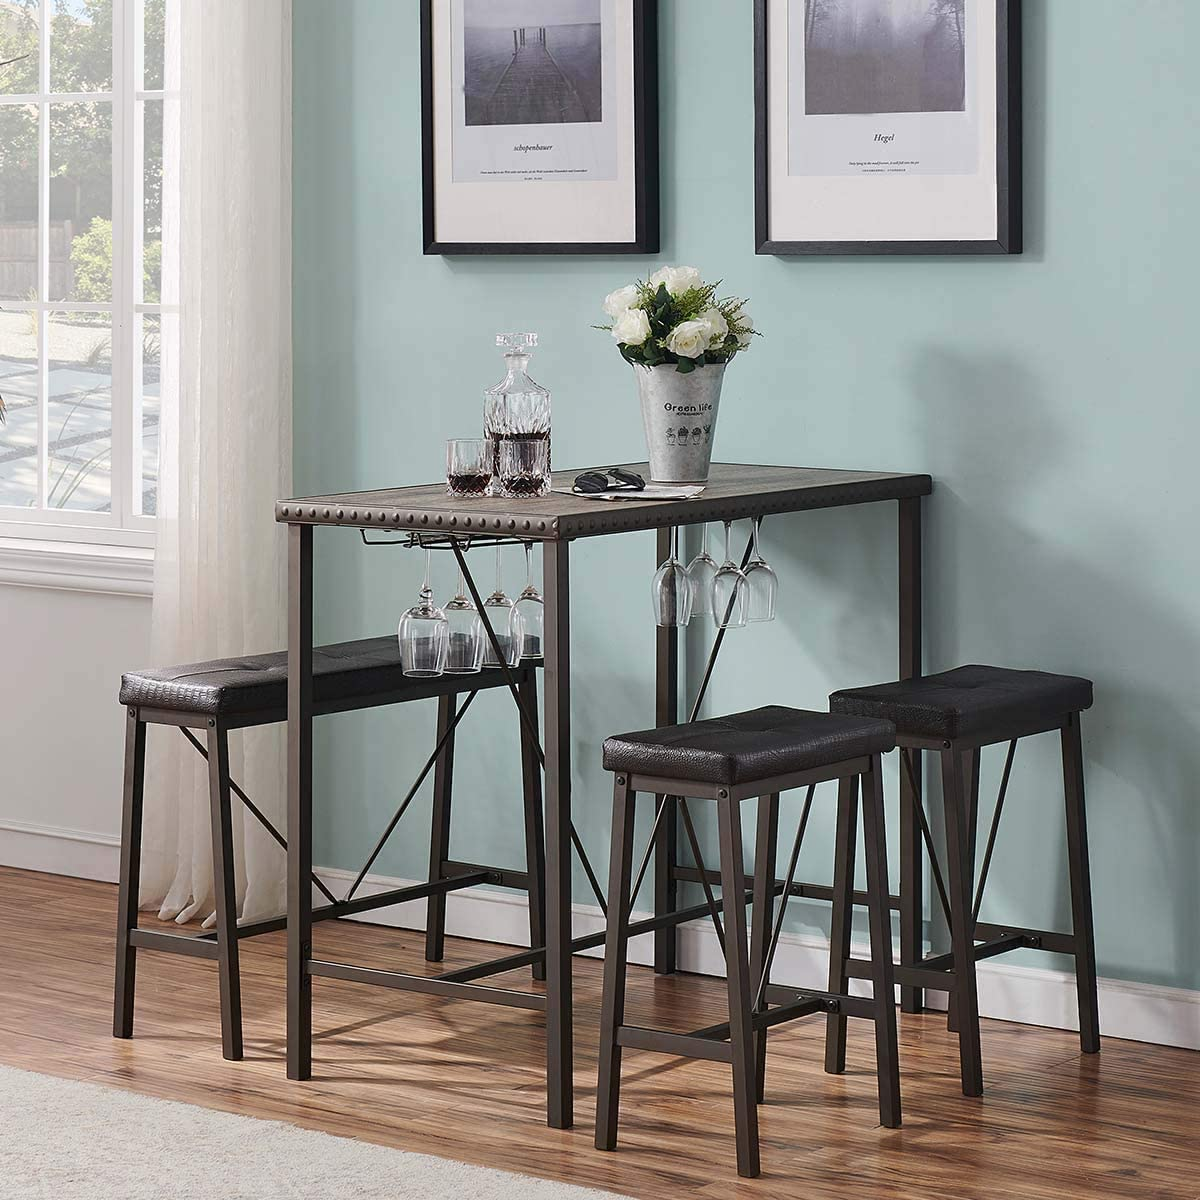 Buy O&K FURNITURE Bar Table and Chairs Set of 9, Industrial Dining ...